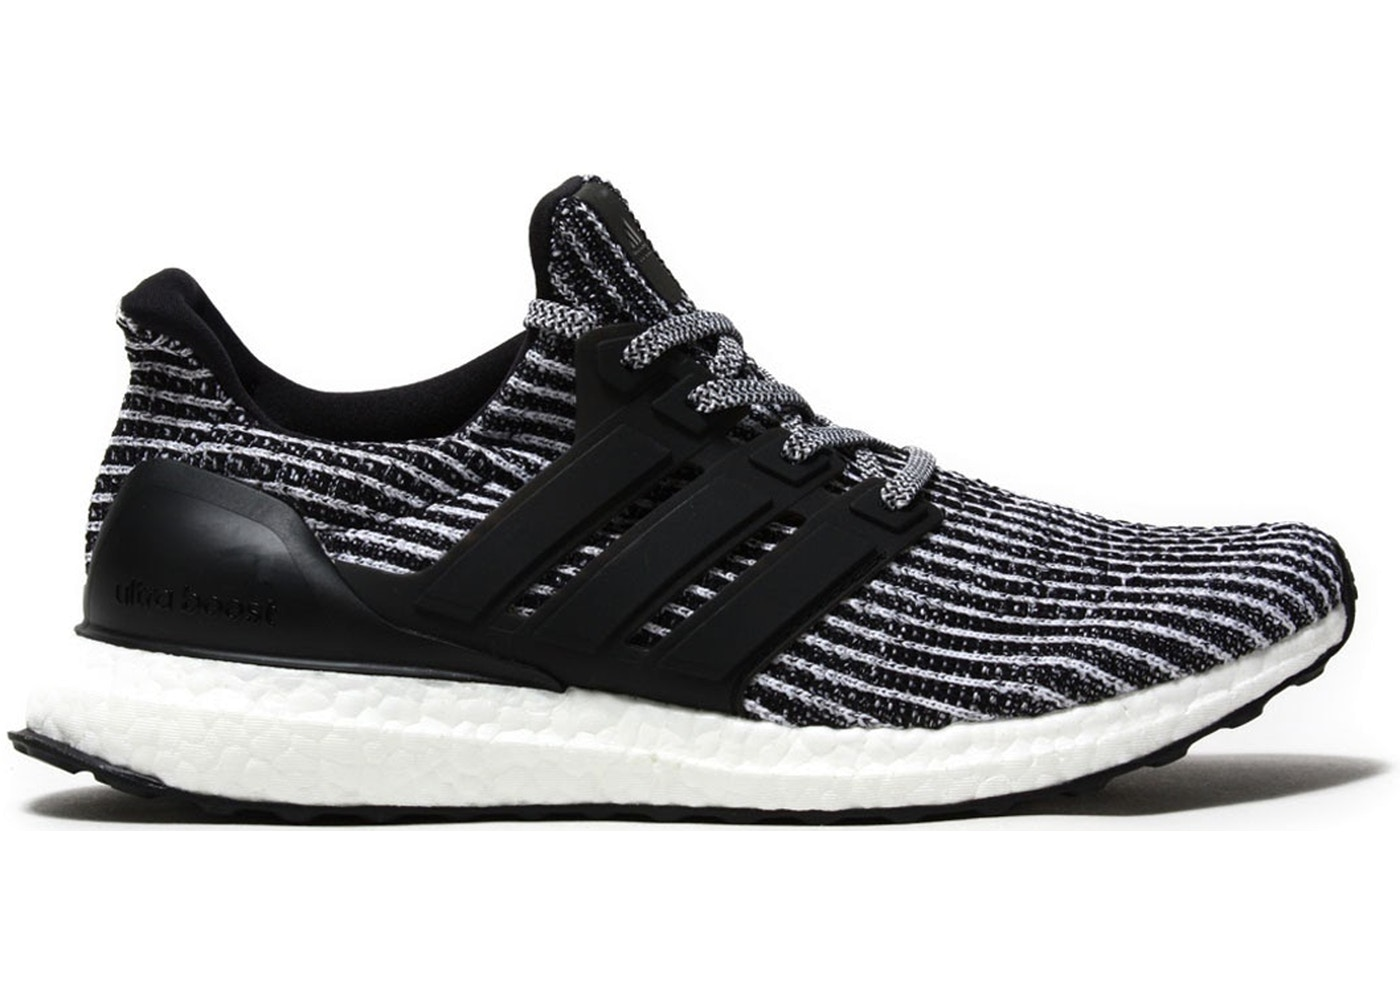 31e7aff48 adidas Ultra Boost 4.0 Cookies   Cream 2.0 - BB6179